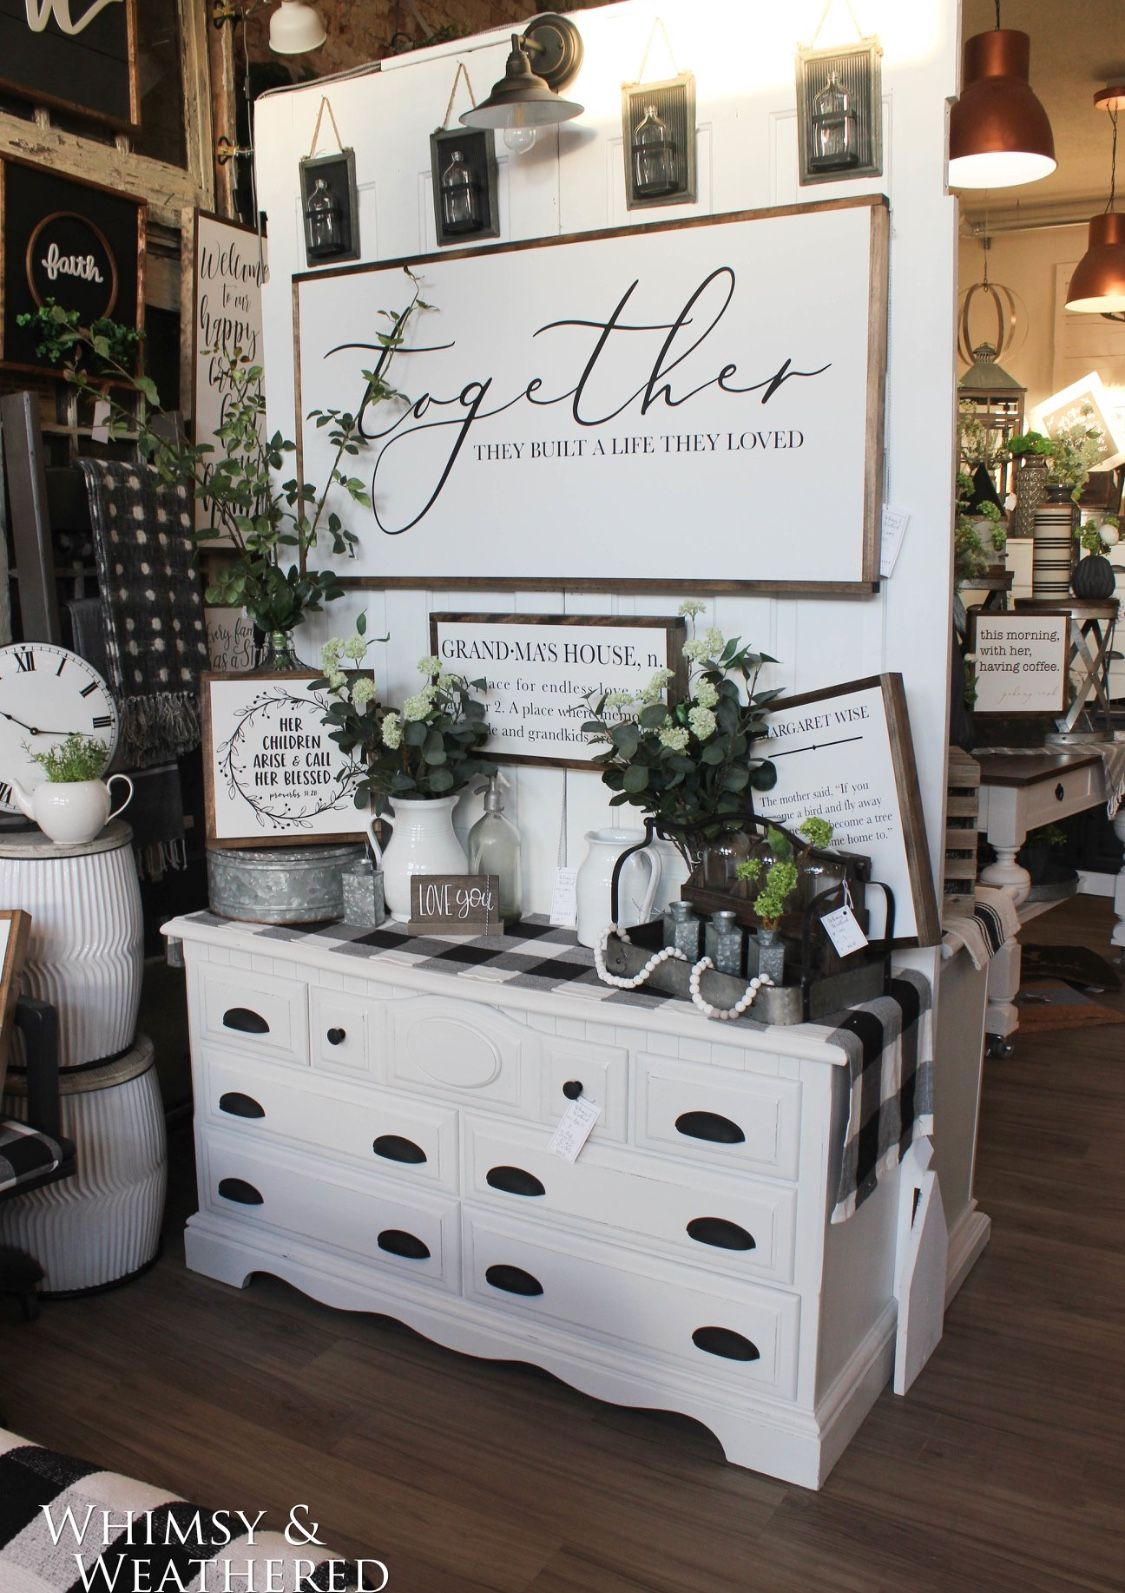 Modern farmhouse decor by Whimsy and Weathered | Small ...